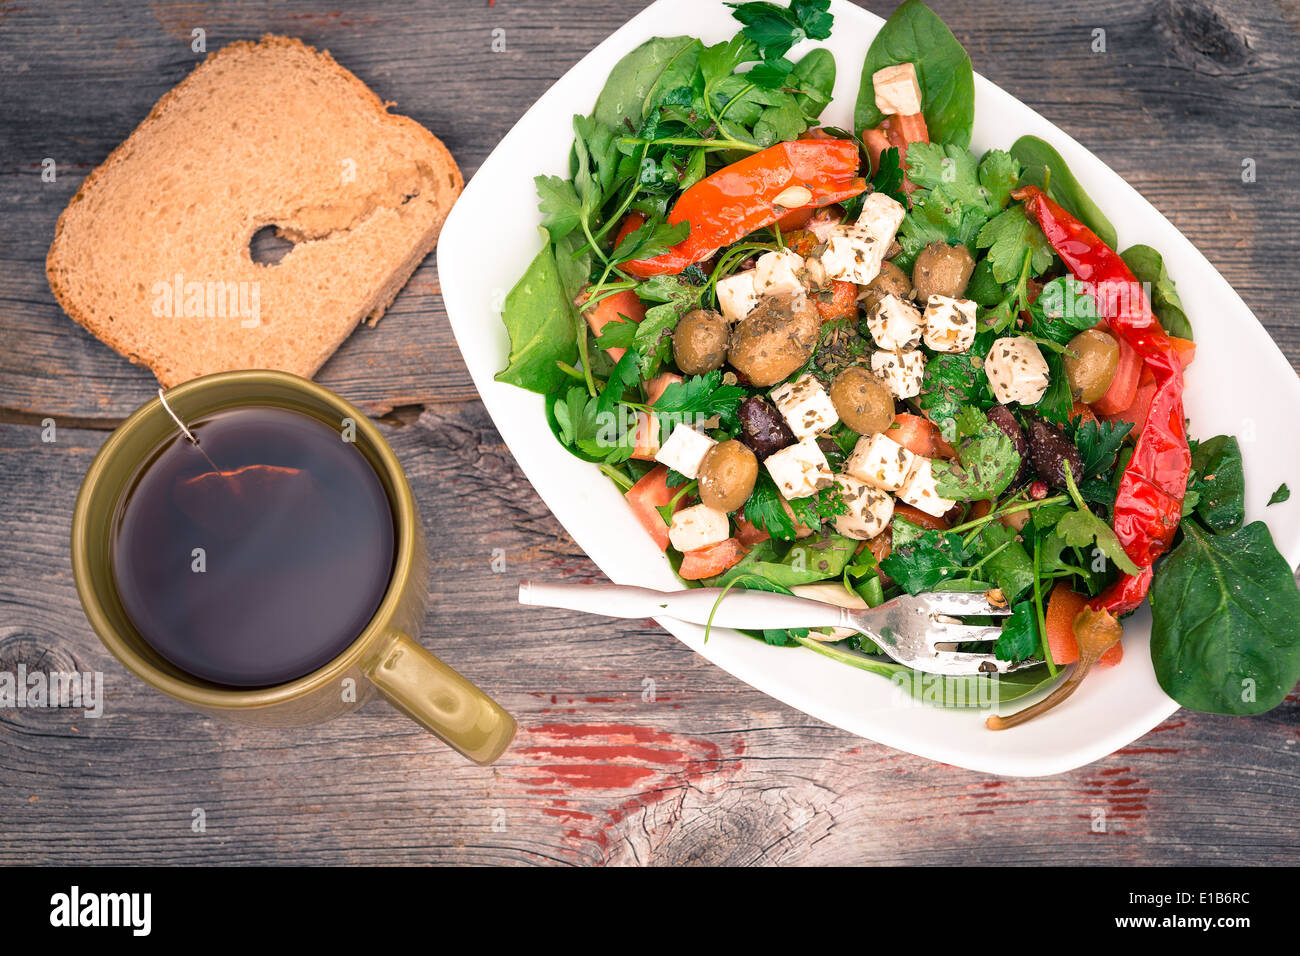 Overhead view of a dish of delicious fish leafy green baby spinach salad with bread and tea on a rustic wooden surface - Stock Image